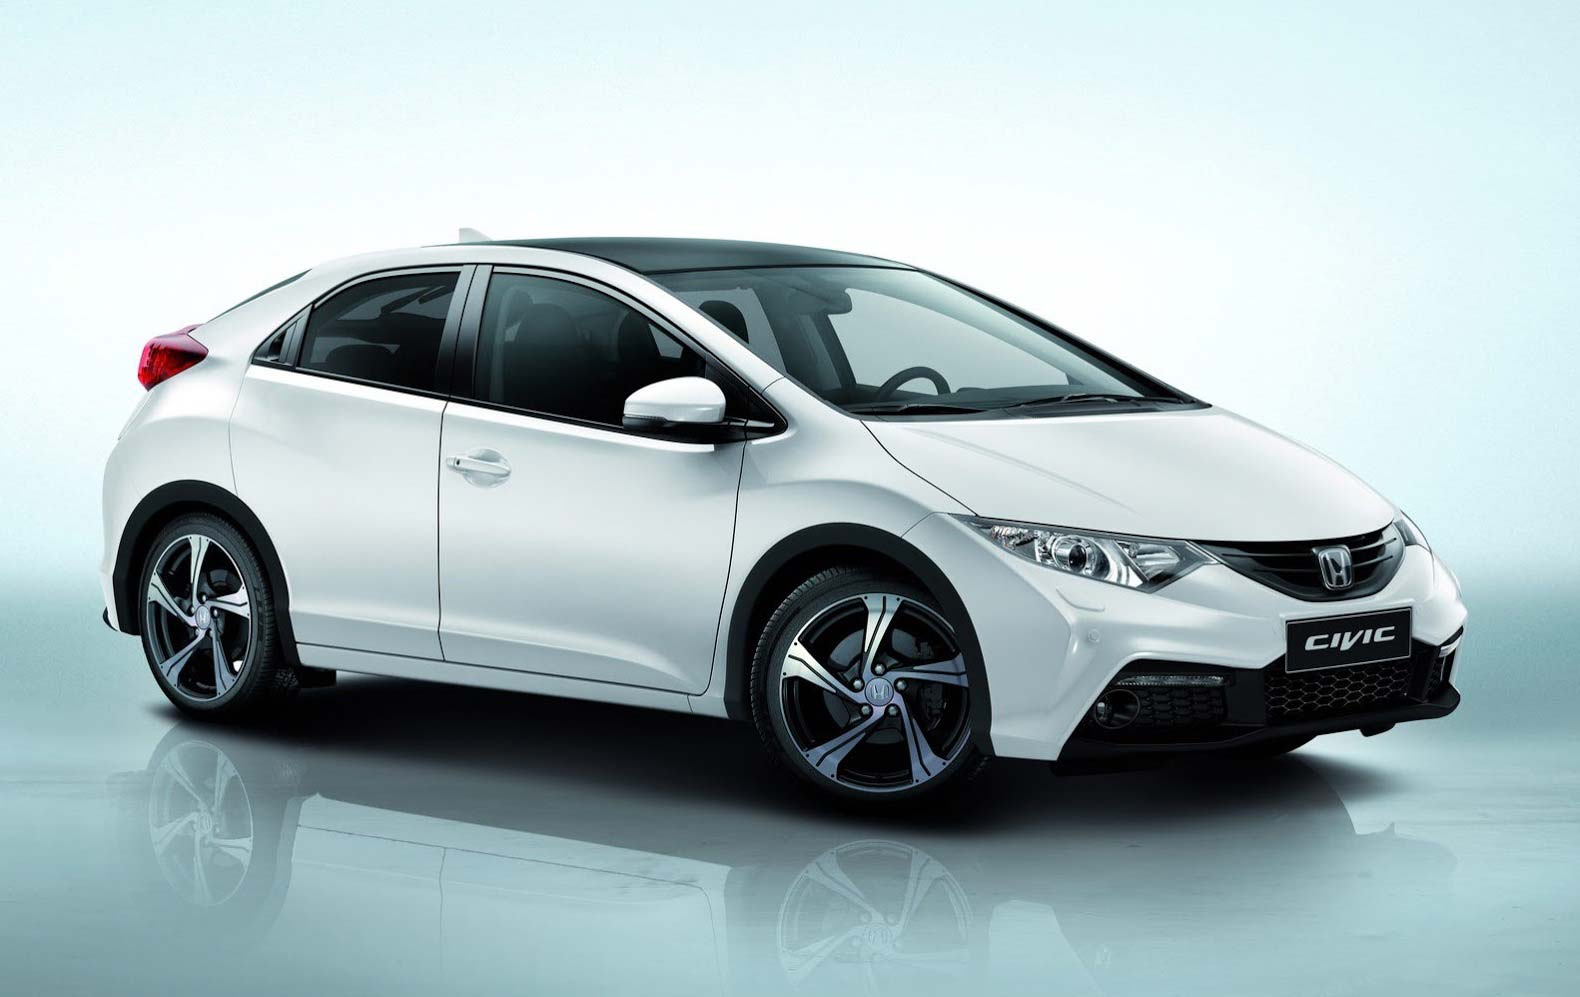 New-Honda-Civic-2014-Euro-Spec4